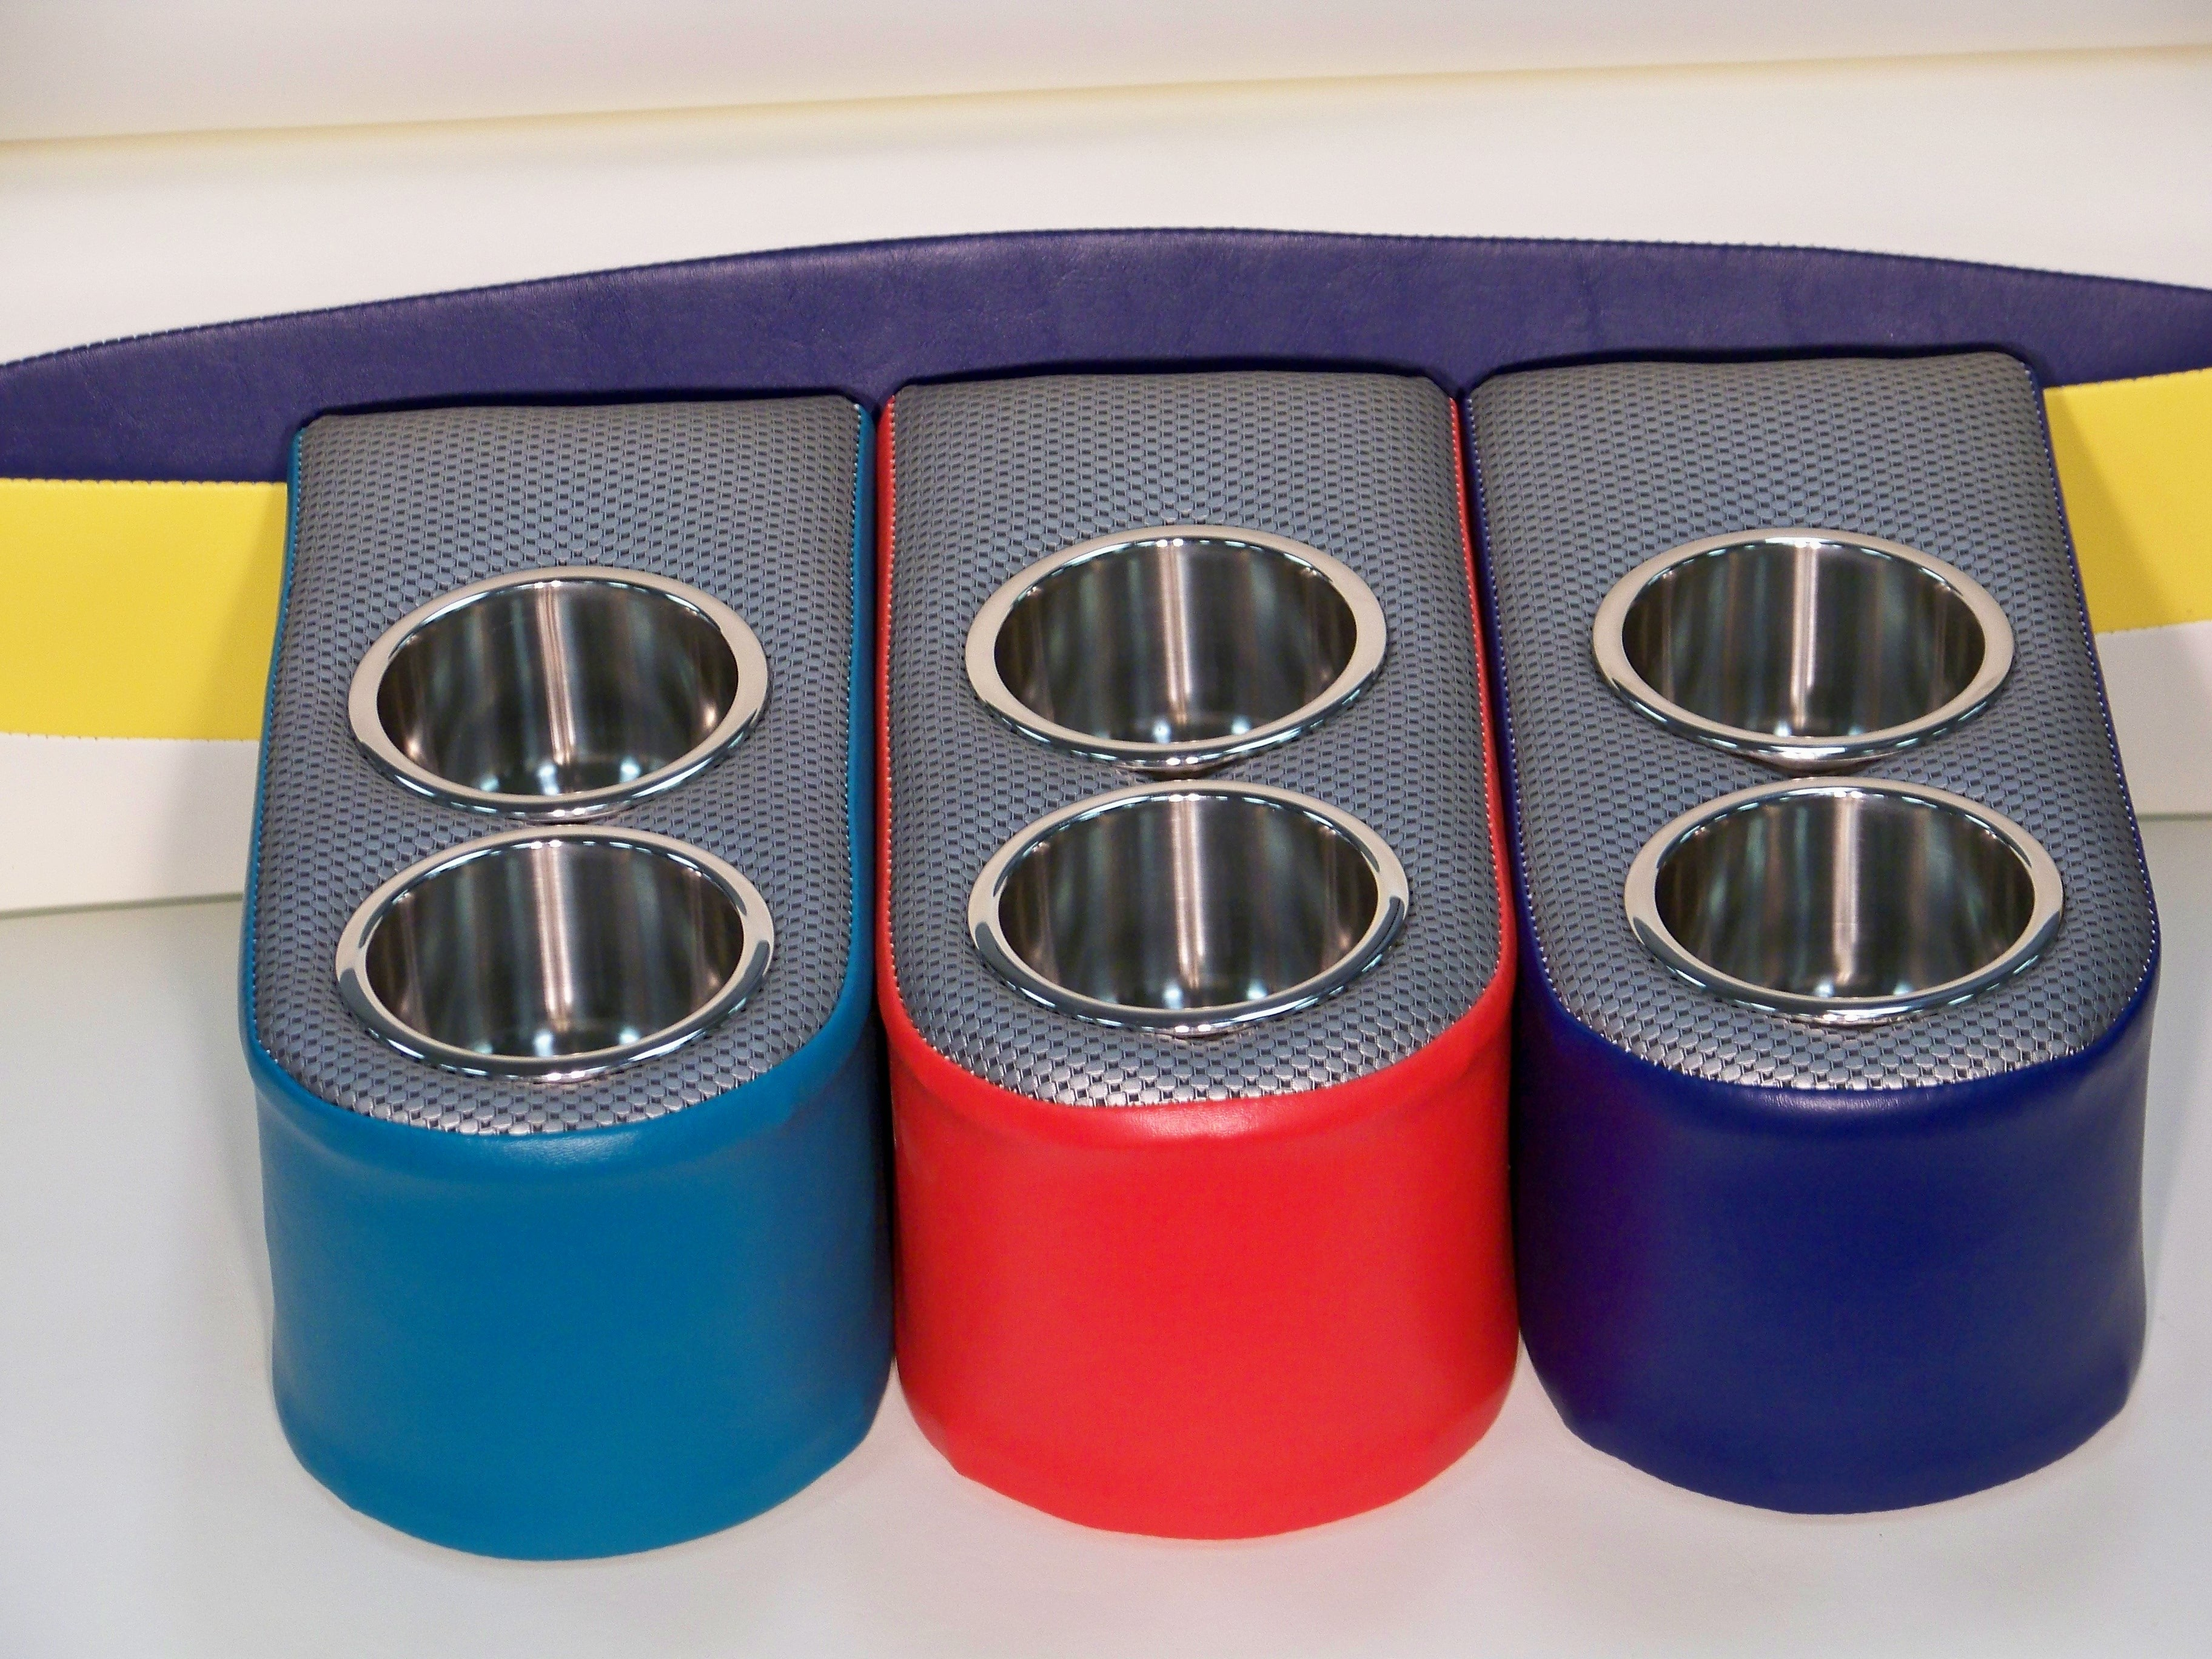 pORTABLE fLOATING CUP HOLDERS